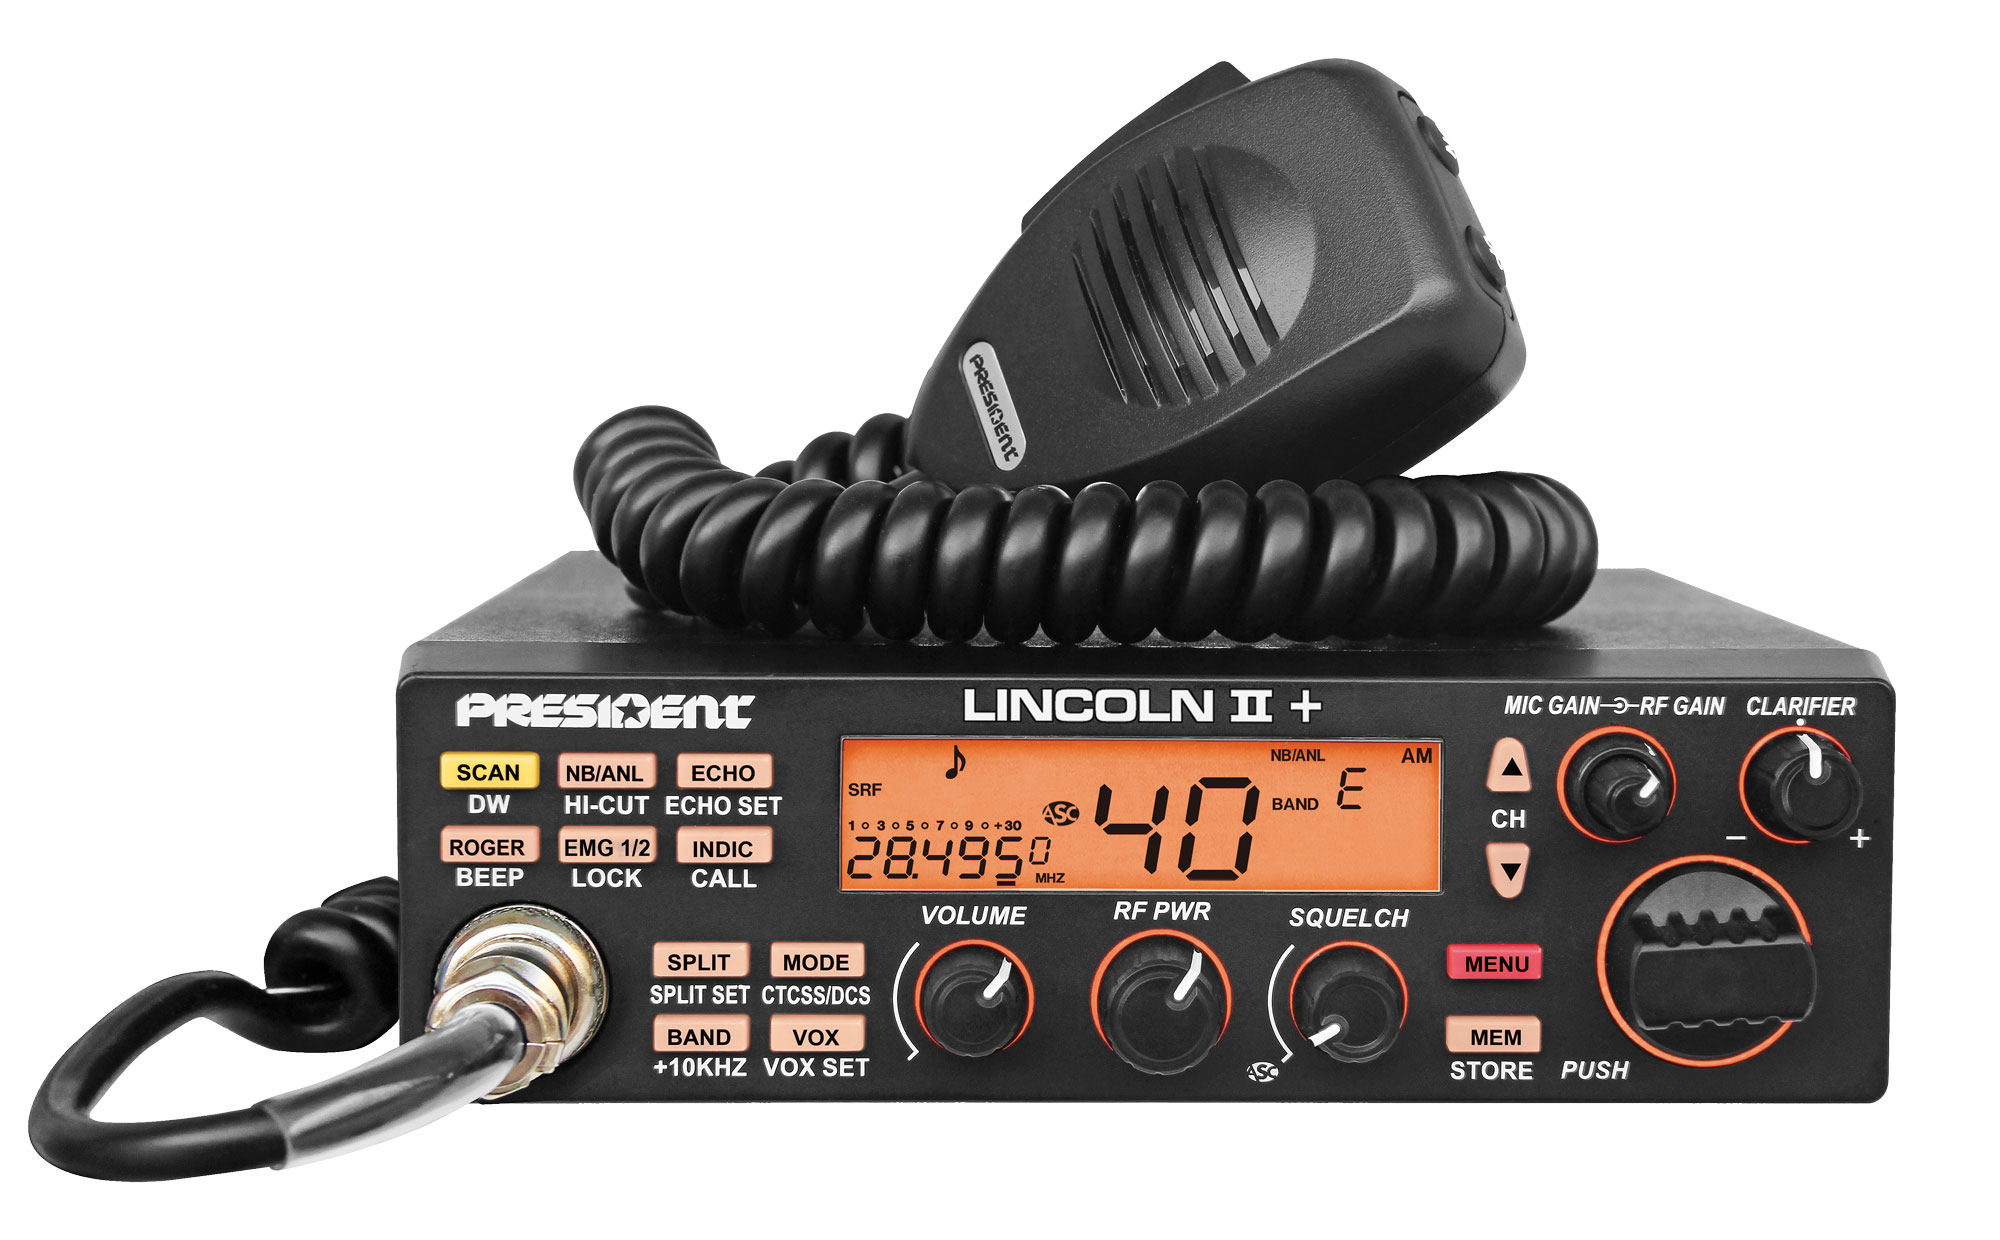 President Lincoln II Plus - 10 & 12 Meter Amateur Radio